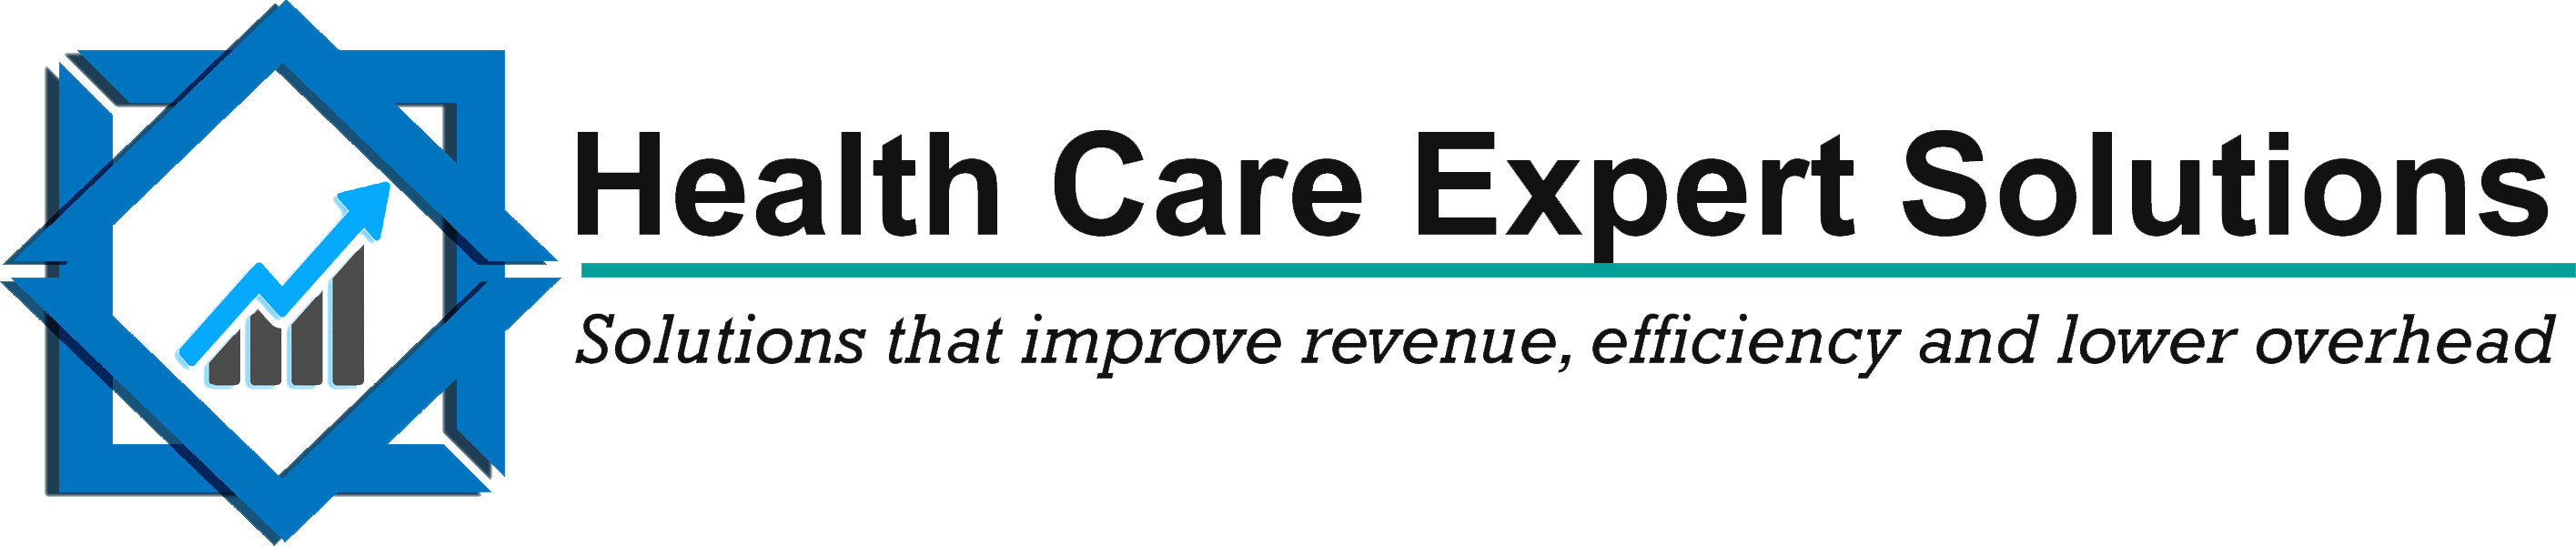 Health Care Expert Solutions— Medical Billing